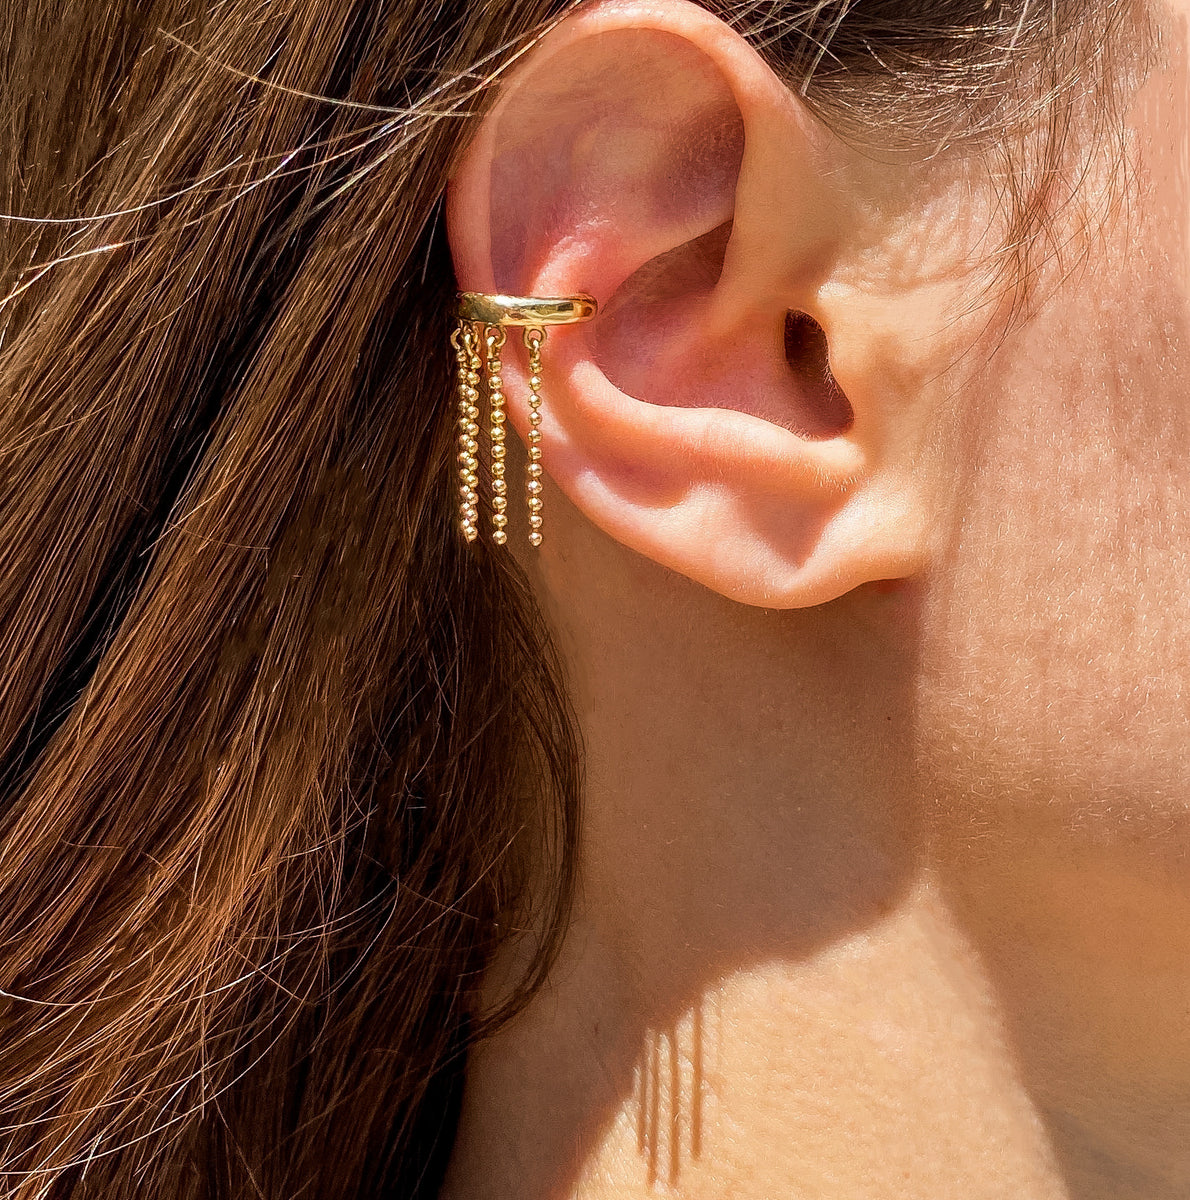 Tasseled ear cuff in 18K gold, Breeze collection